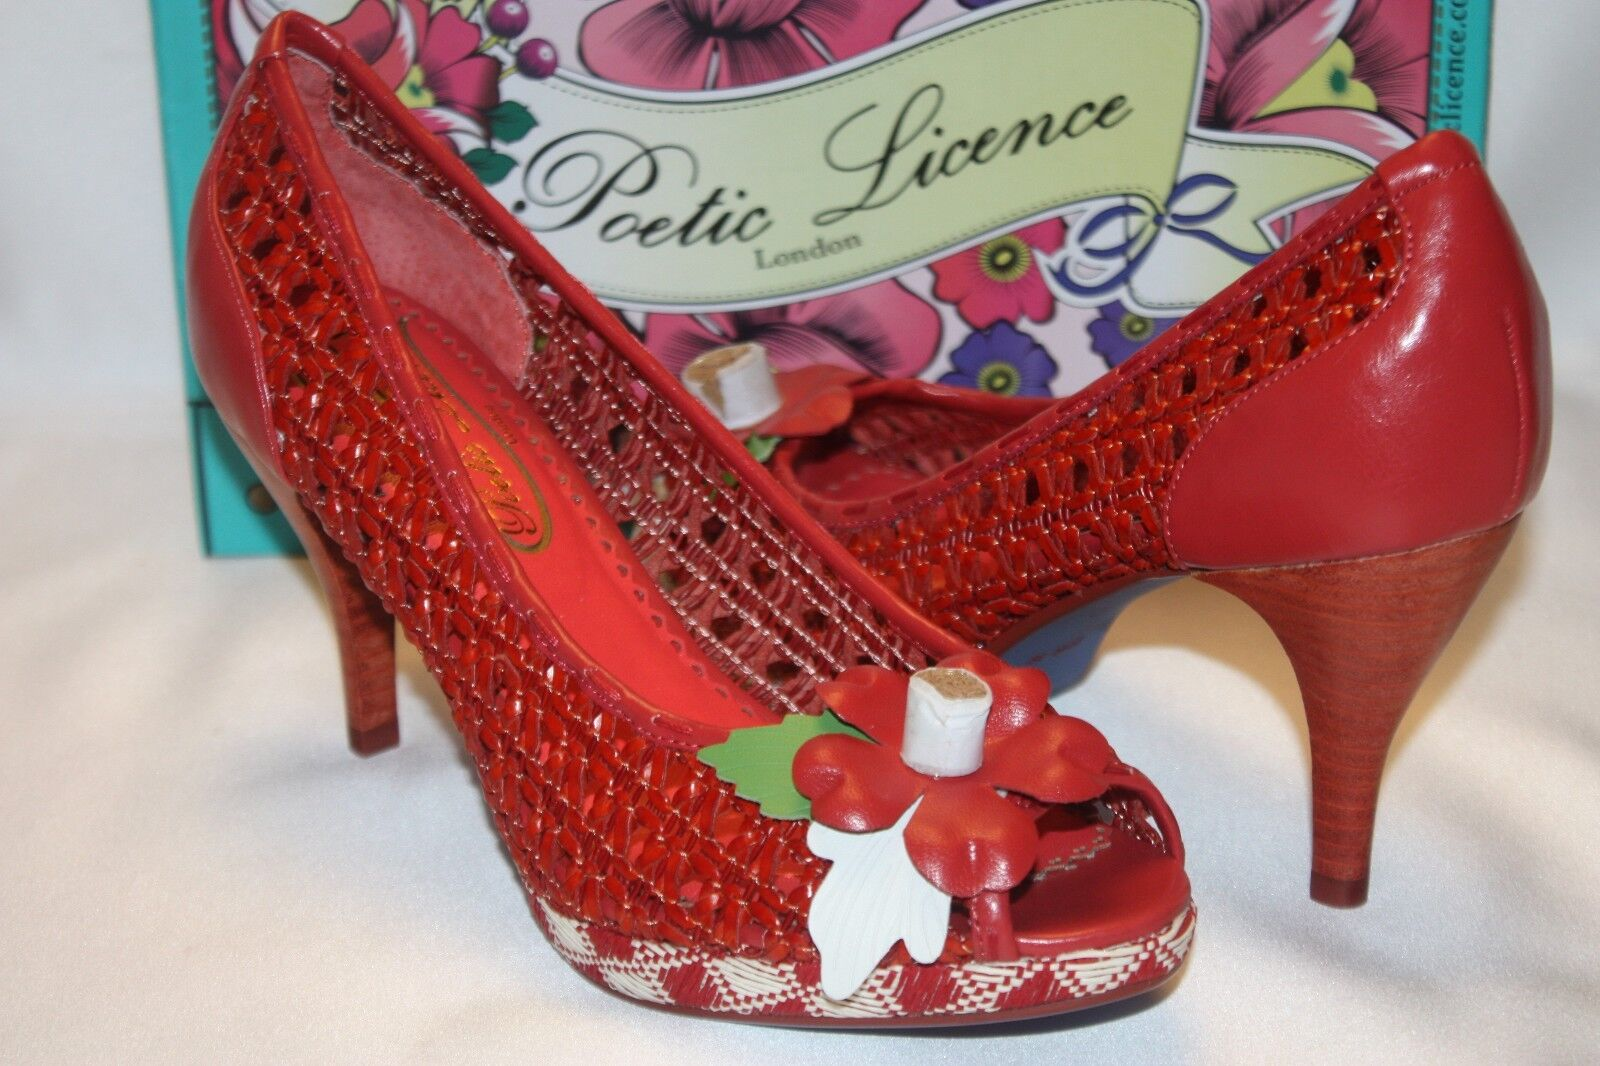 NEW! NIB! POETIC LICENSE Harvest Pumpkin Woven Leather PRICKLY PEAR Pumps 8 $129